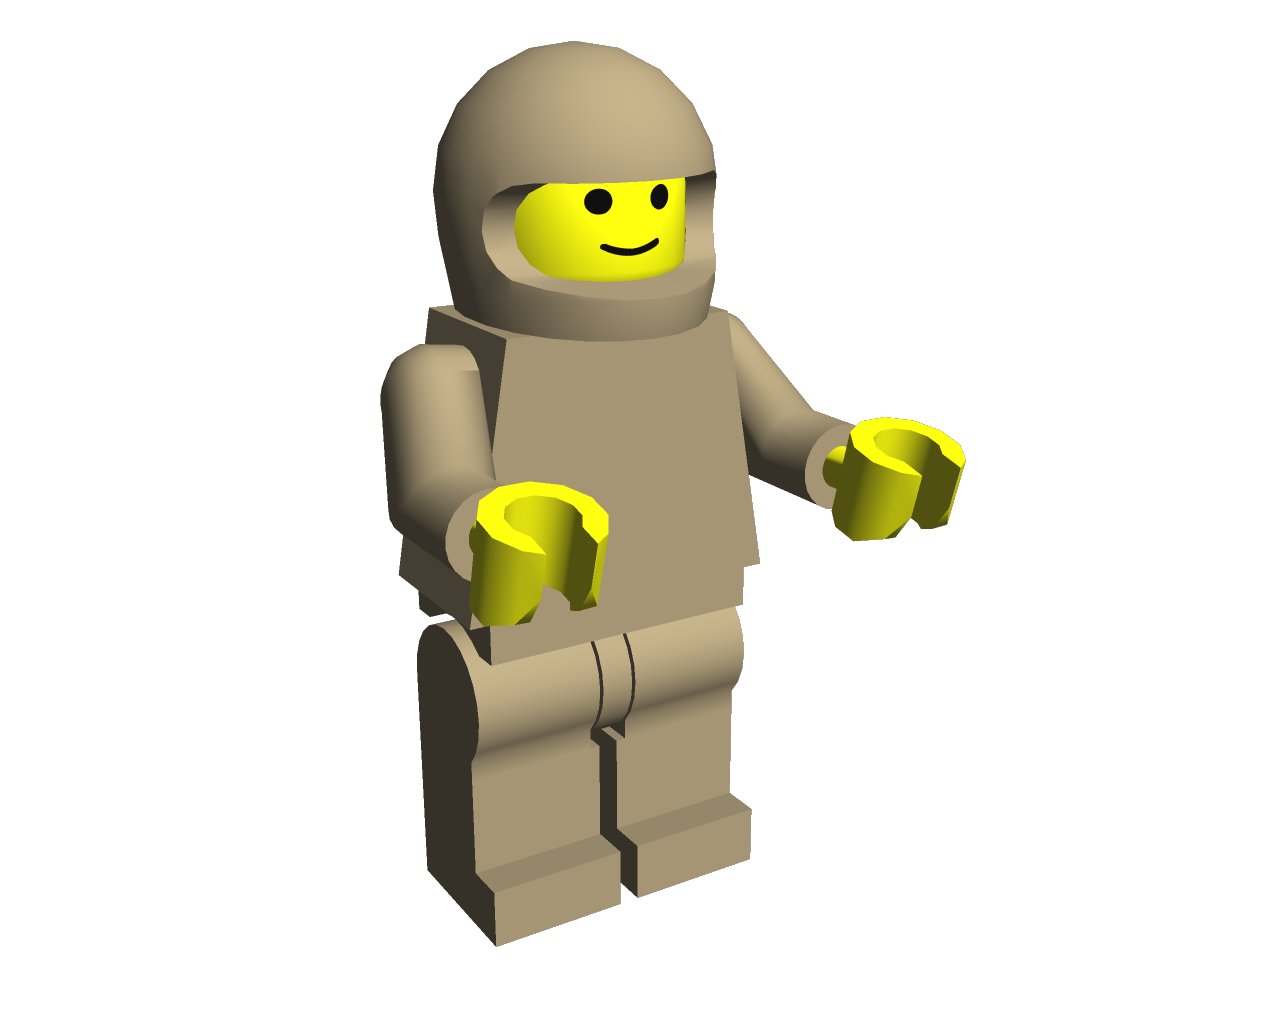 Lego Man PNG HD image #46639